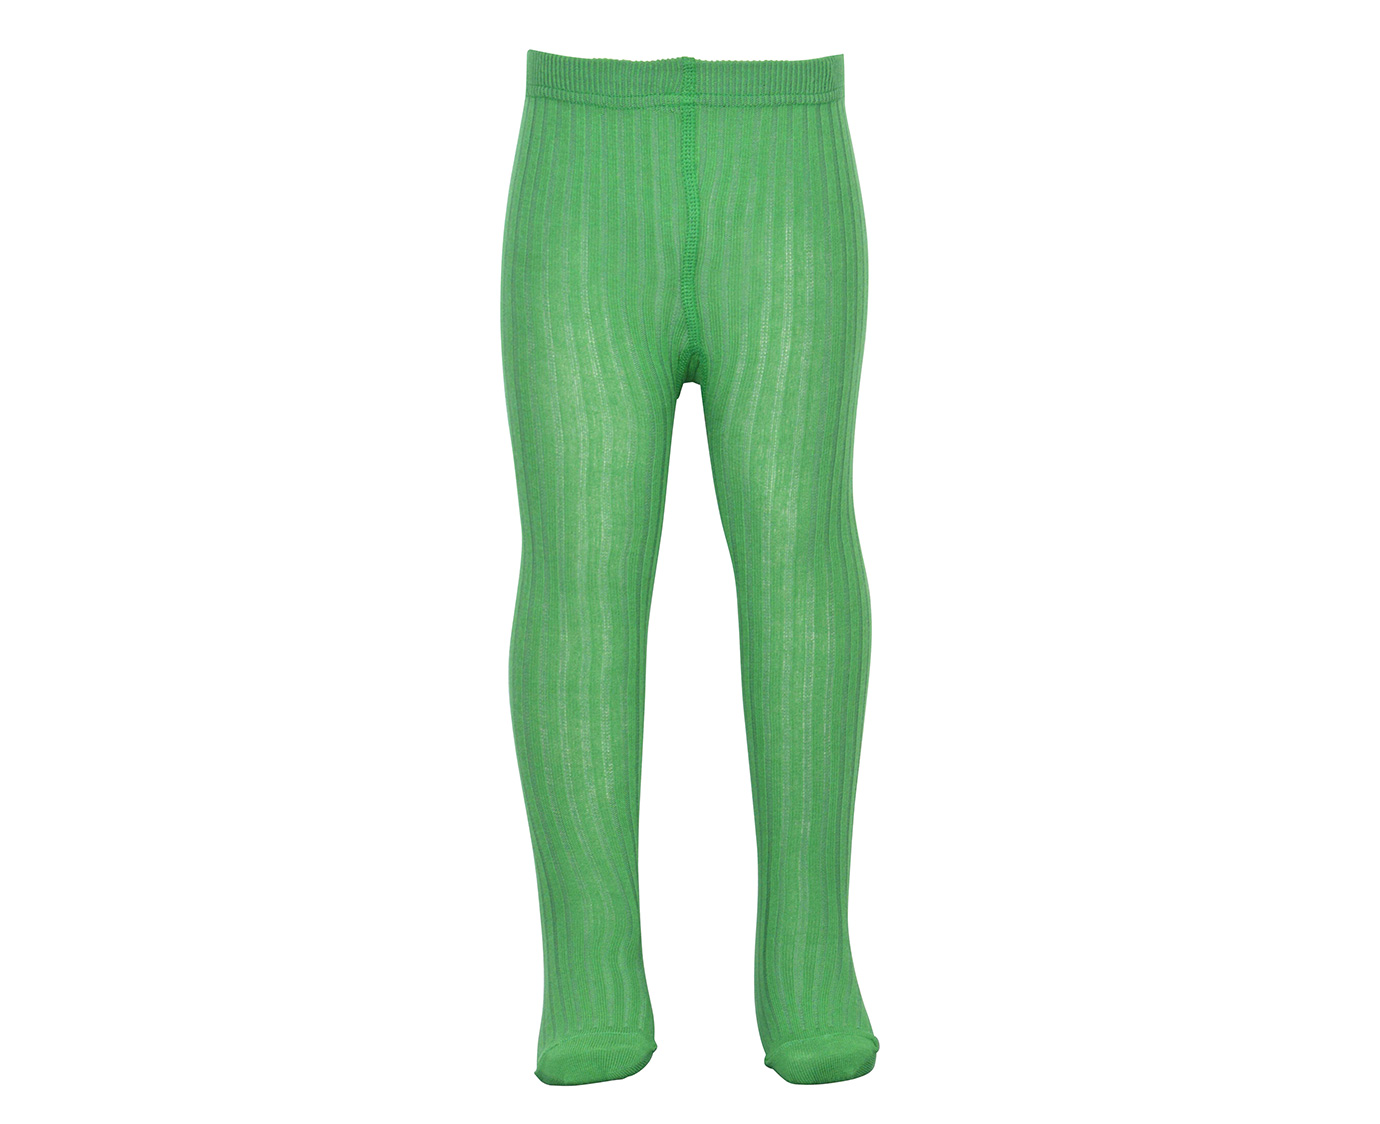 Maillot 'Forest green'